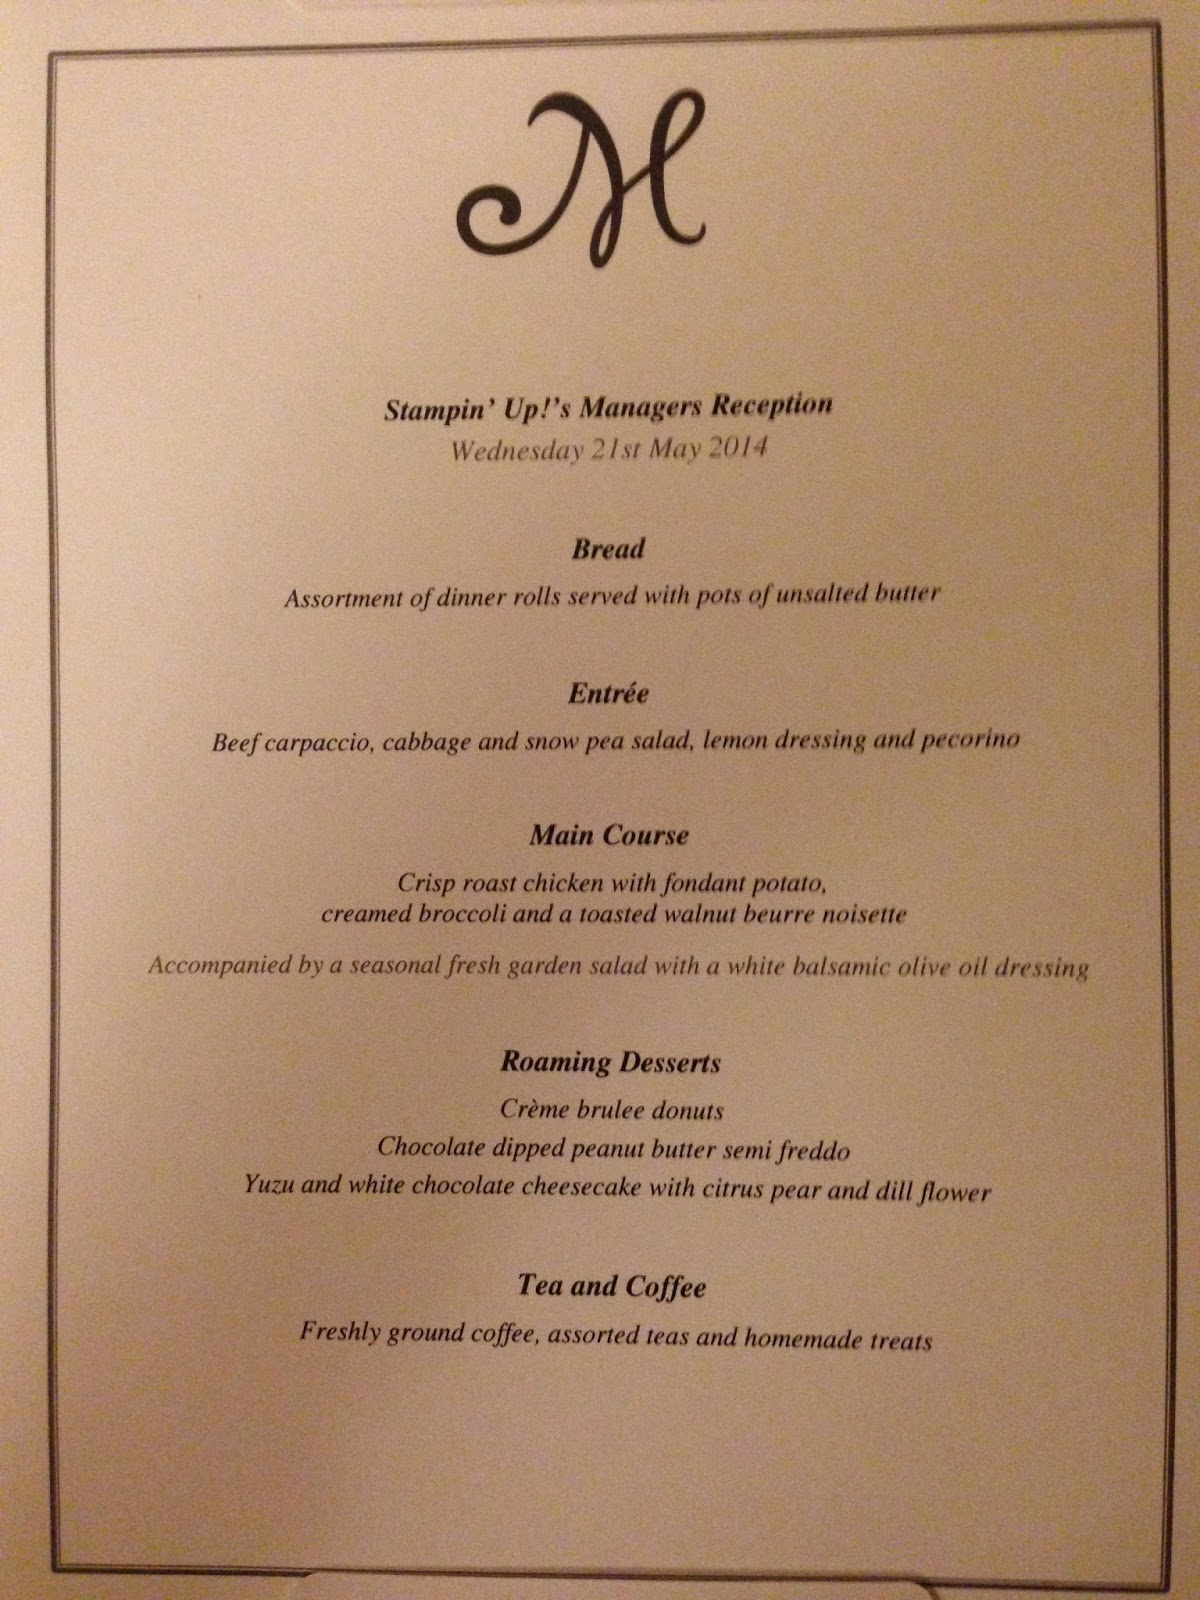 menu from the managers reception